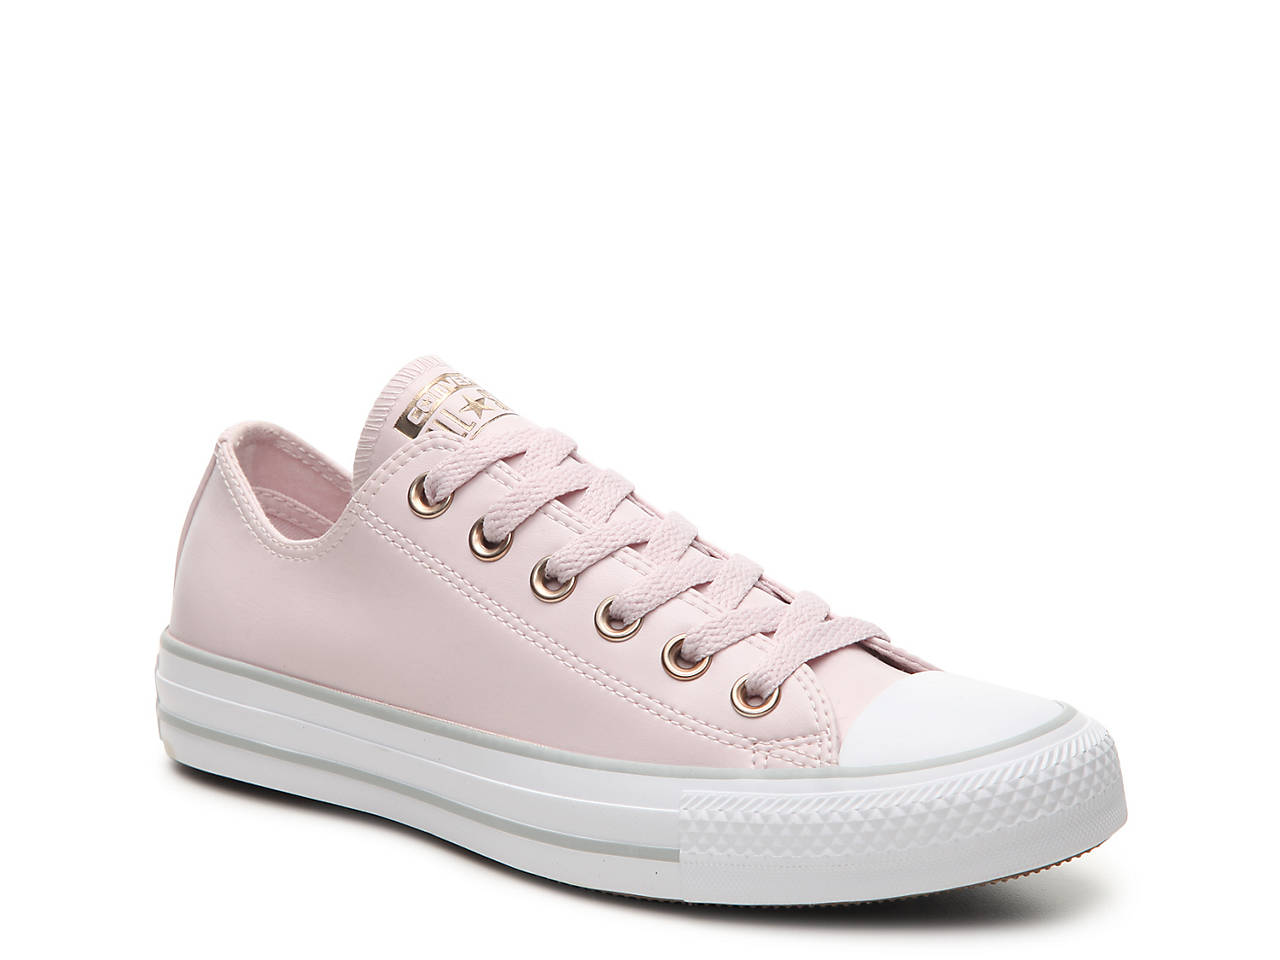 0de2a95e58ce Converse Chuck Taylor All Star Ox Sneaker - Women s Women s Shoes